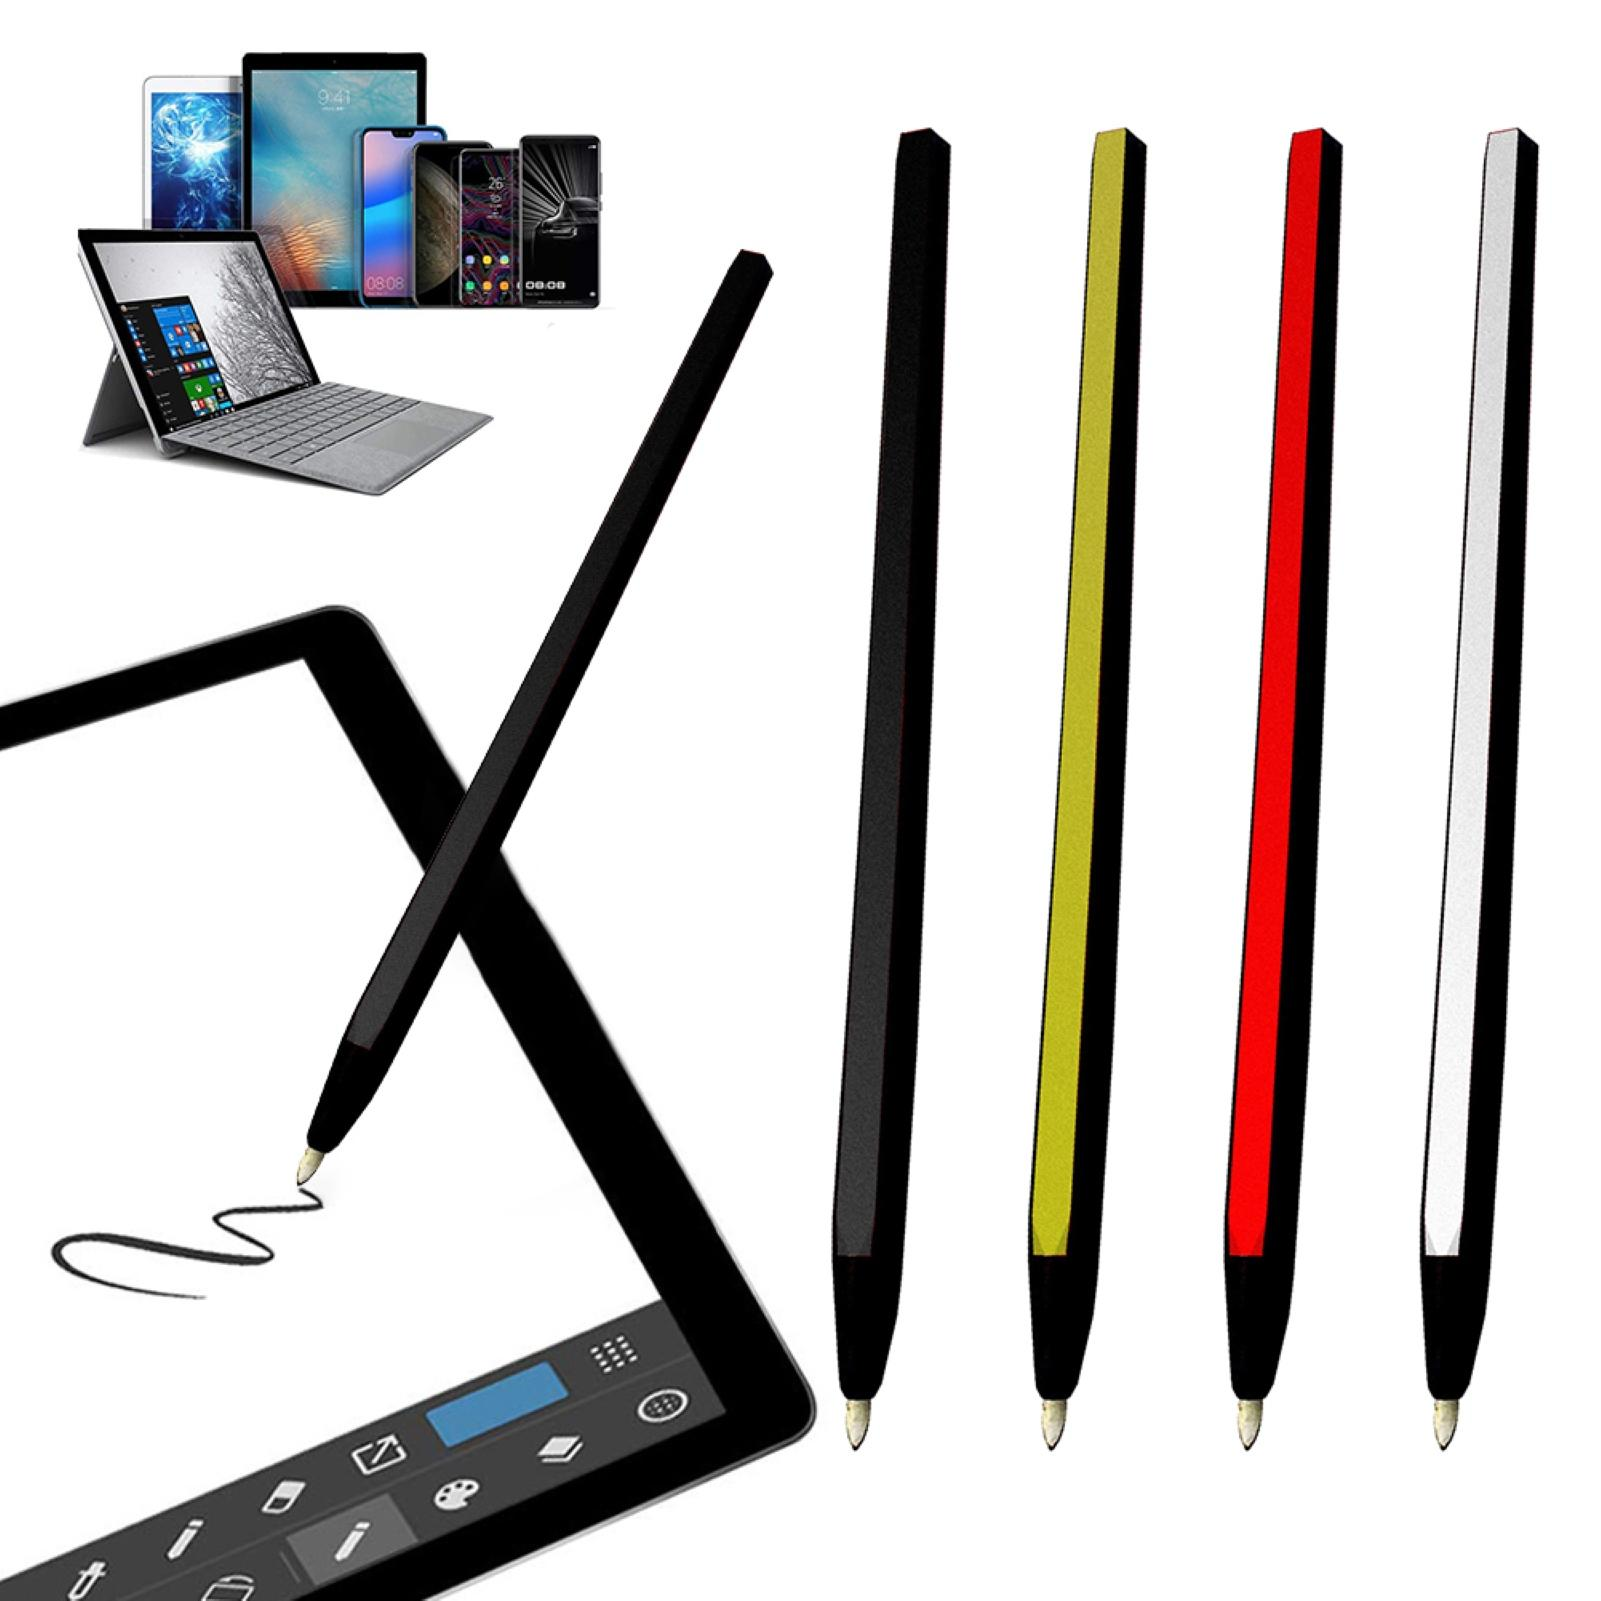 Soft Nib Capacitive Touch Screen Stylus Pencil for Tablet iPad Cell Phone PC Capacitive Pen Mobile P